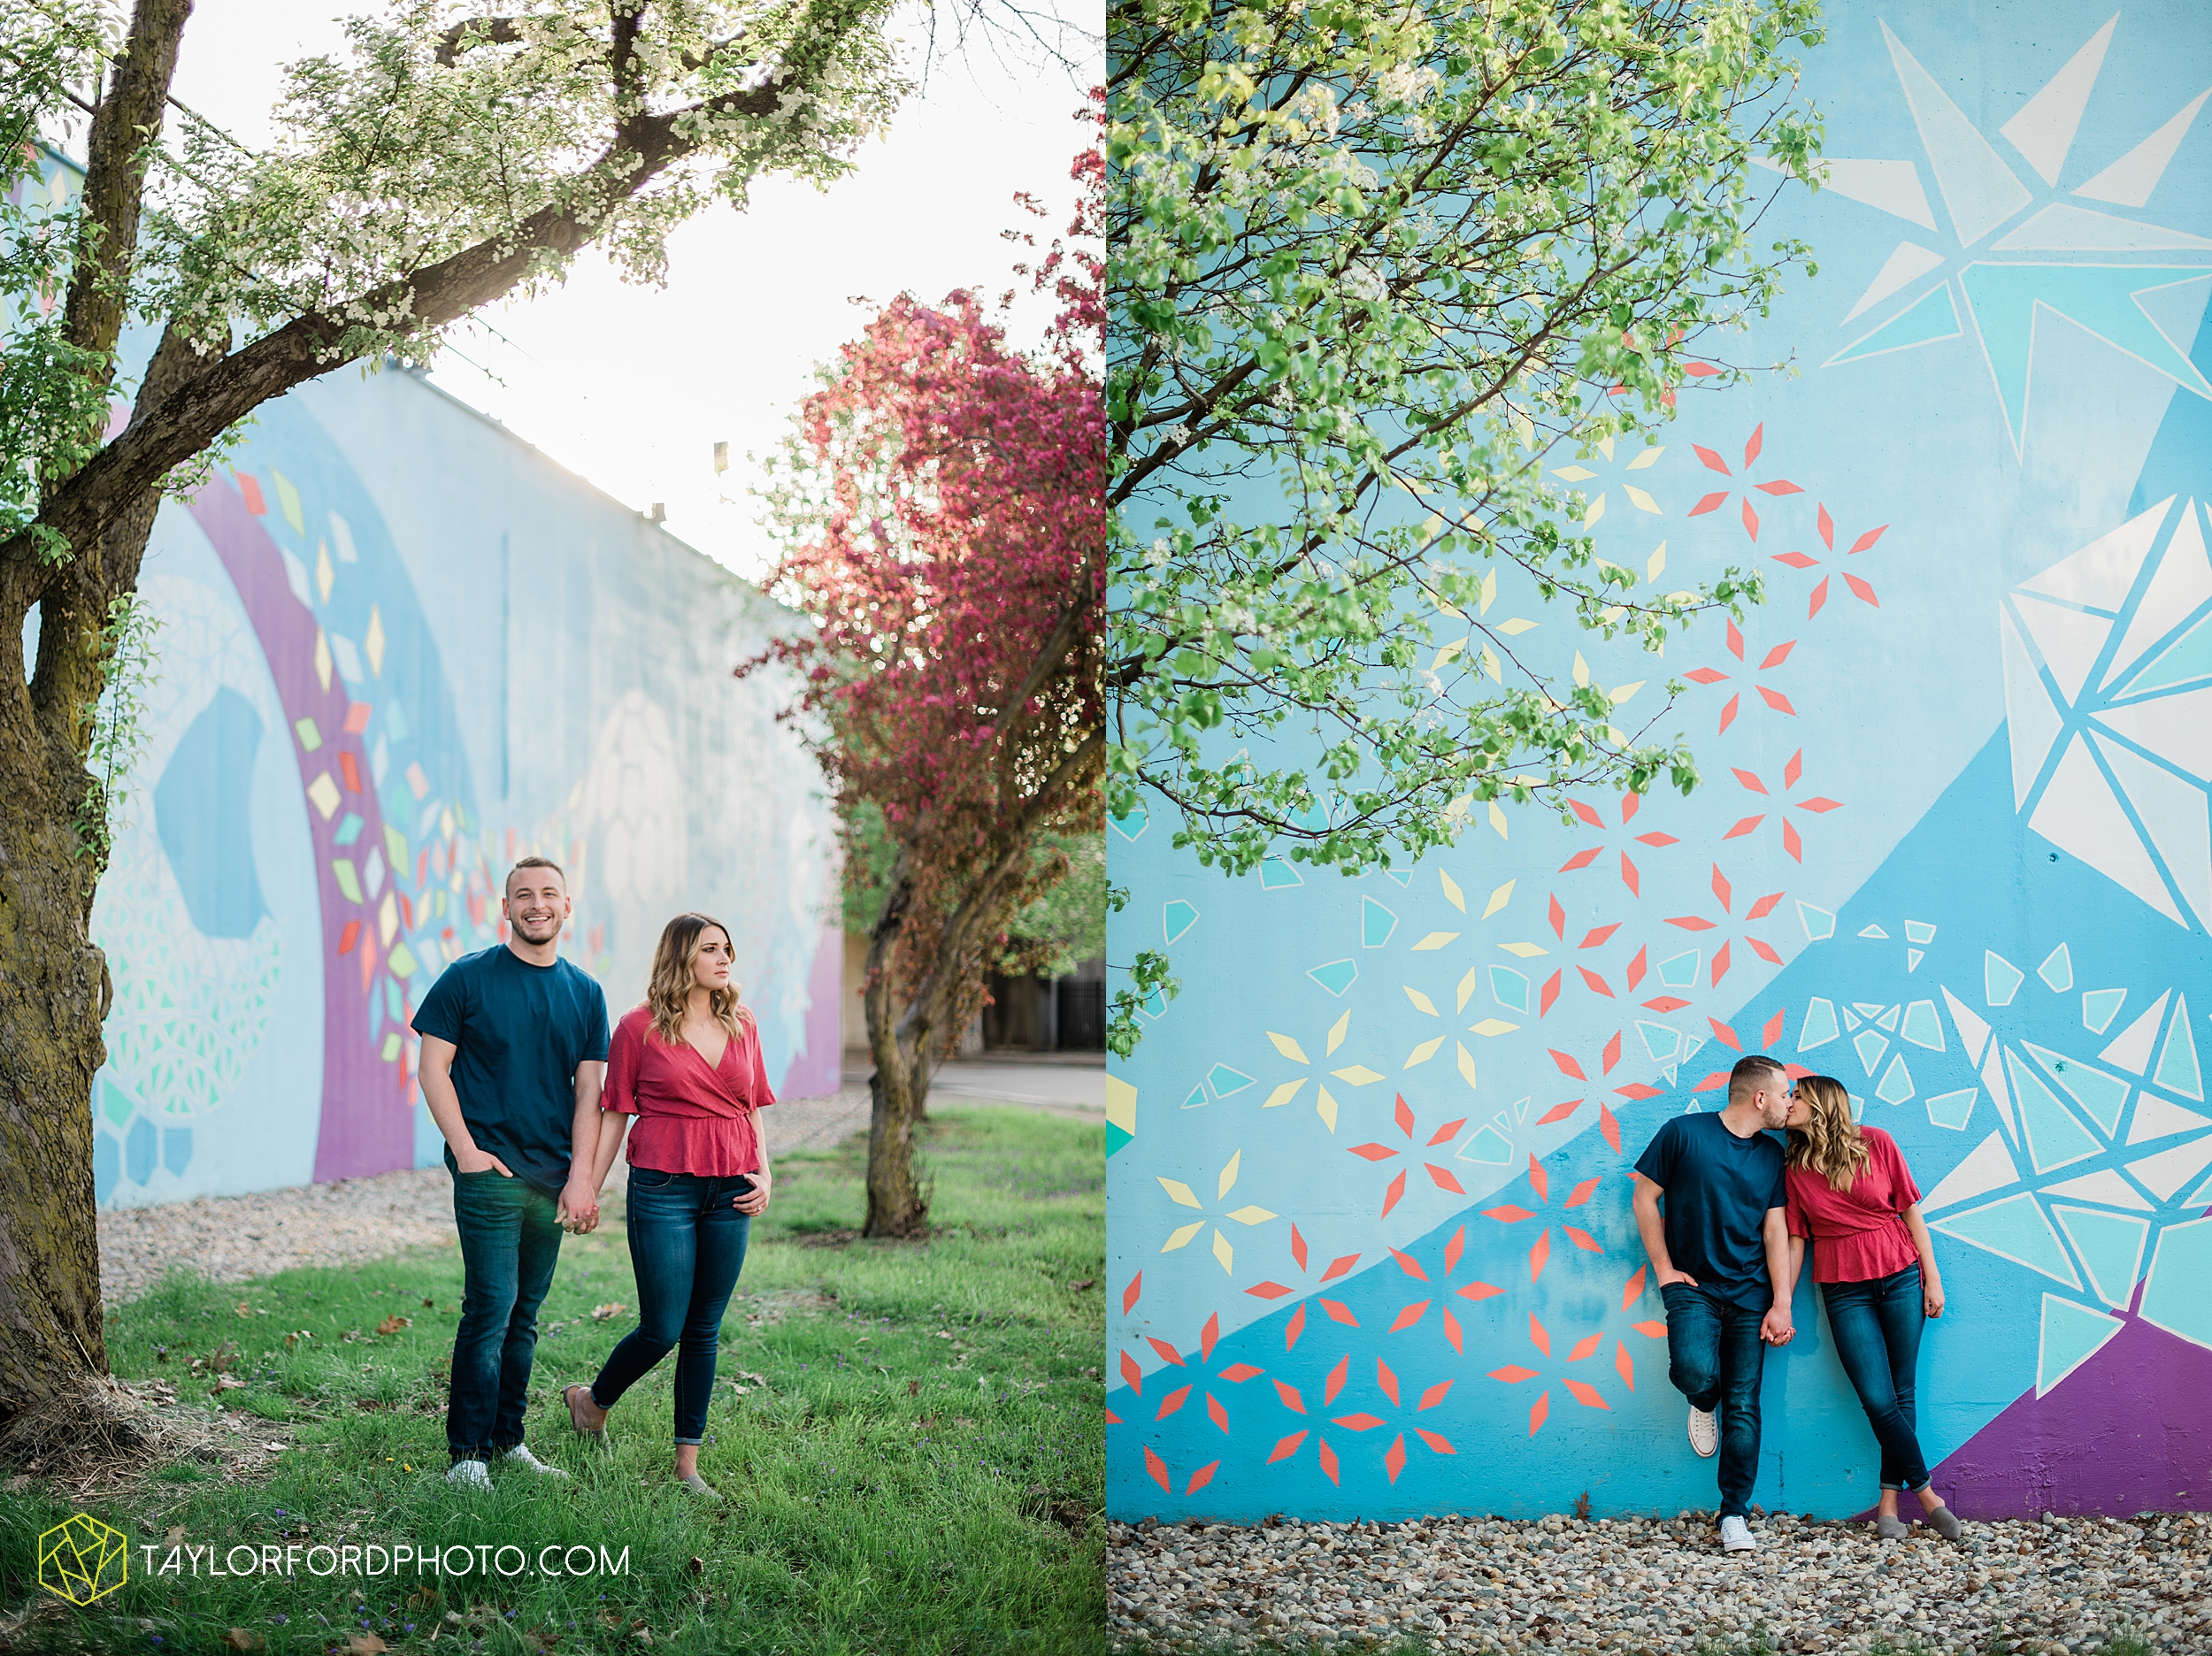 aly-taylor-downtown-fort-wayne-indiana-spring-engagement-photographer-photography-taylor-ford-hirschy-photographer_2597.jpg